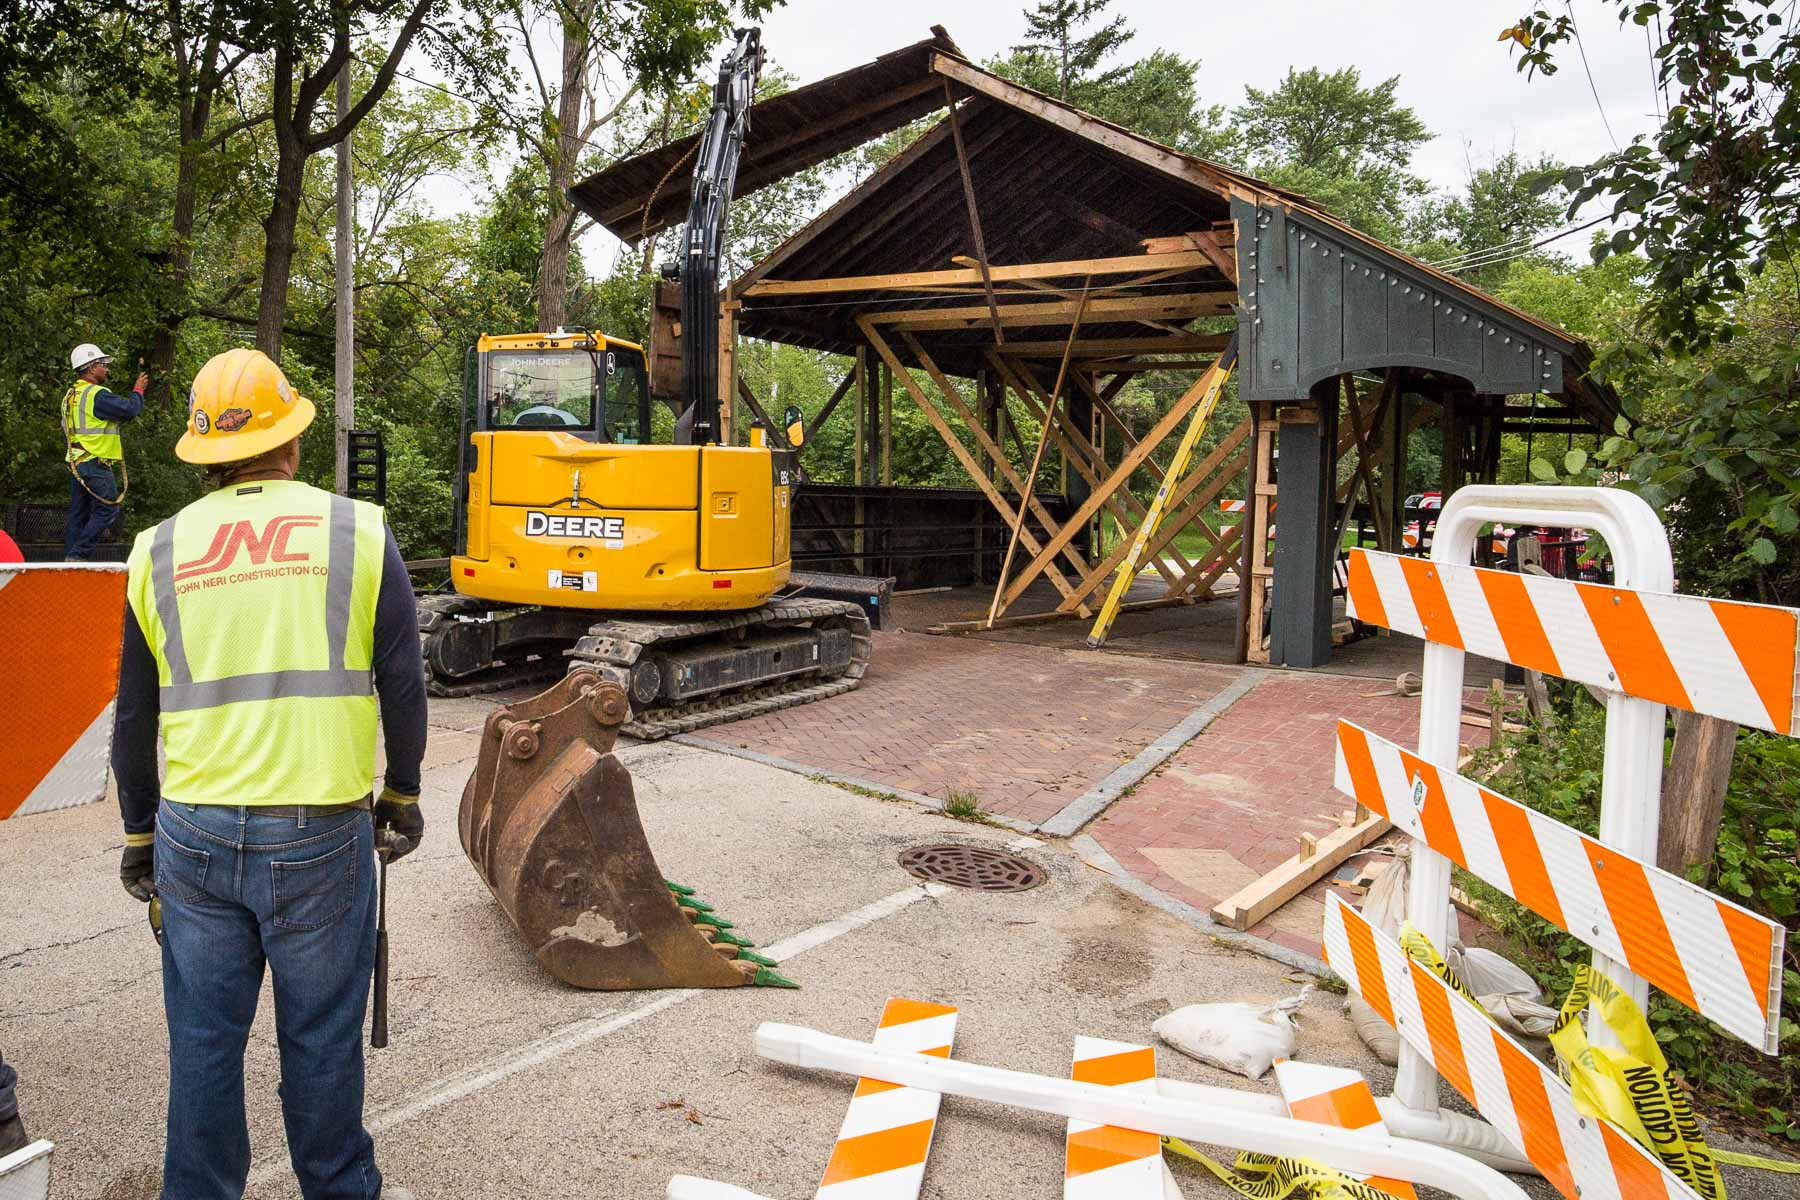 The demolition crew started bright and early this morning on removal of the damaged wooden canopy of the Long Grove bridge.